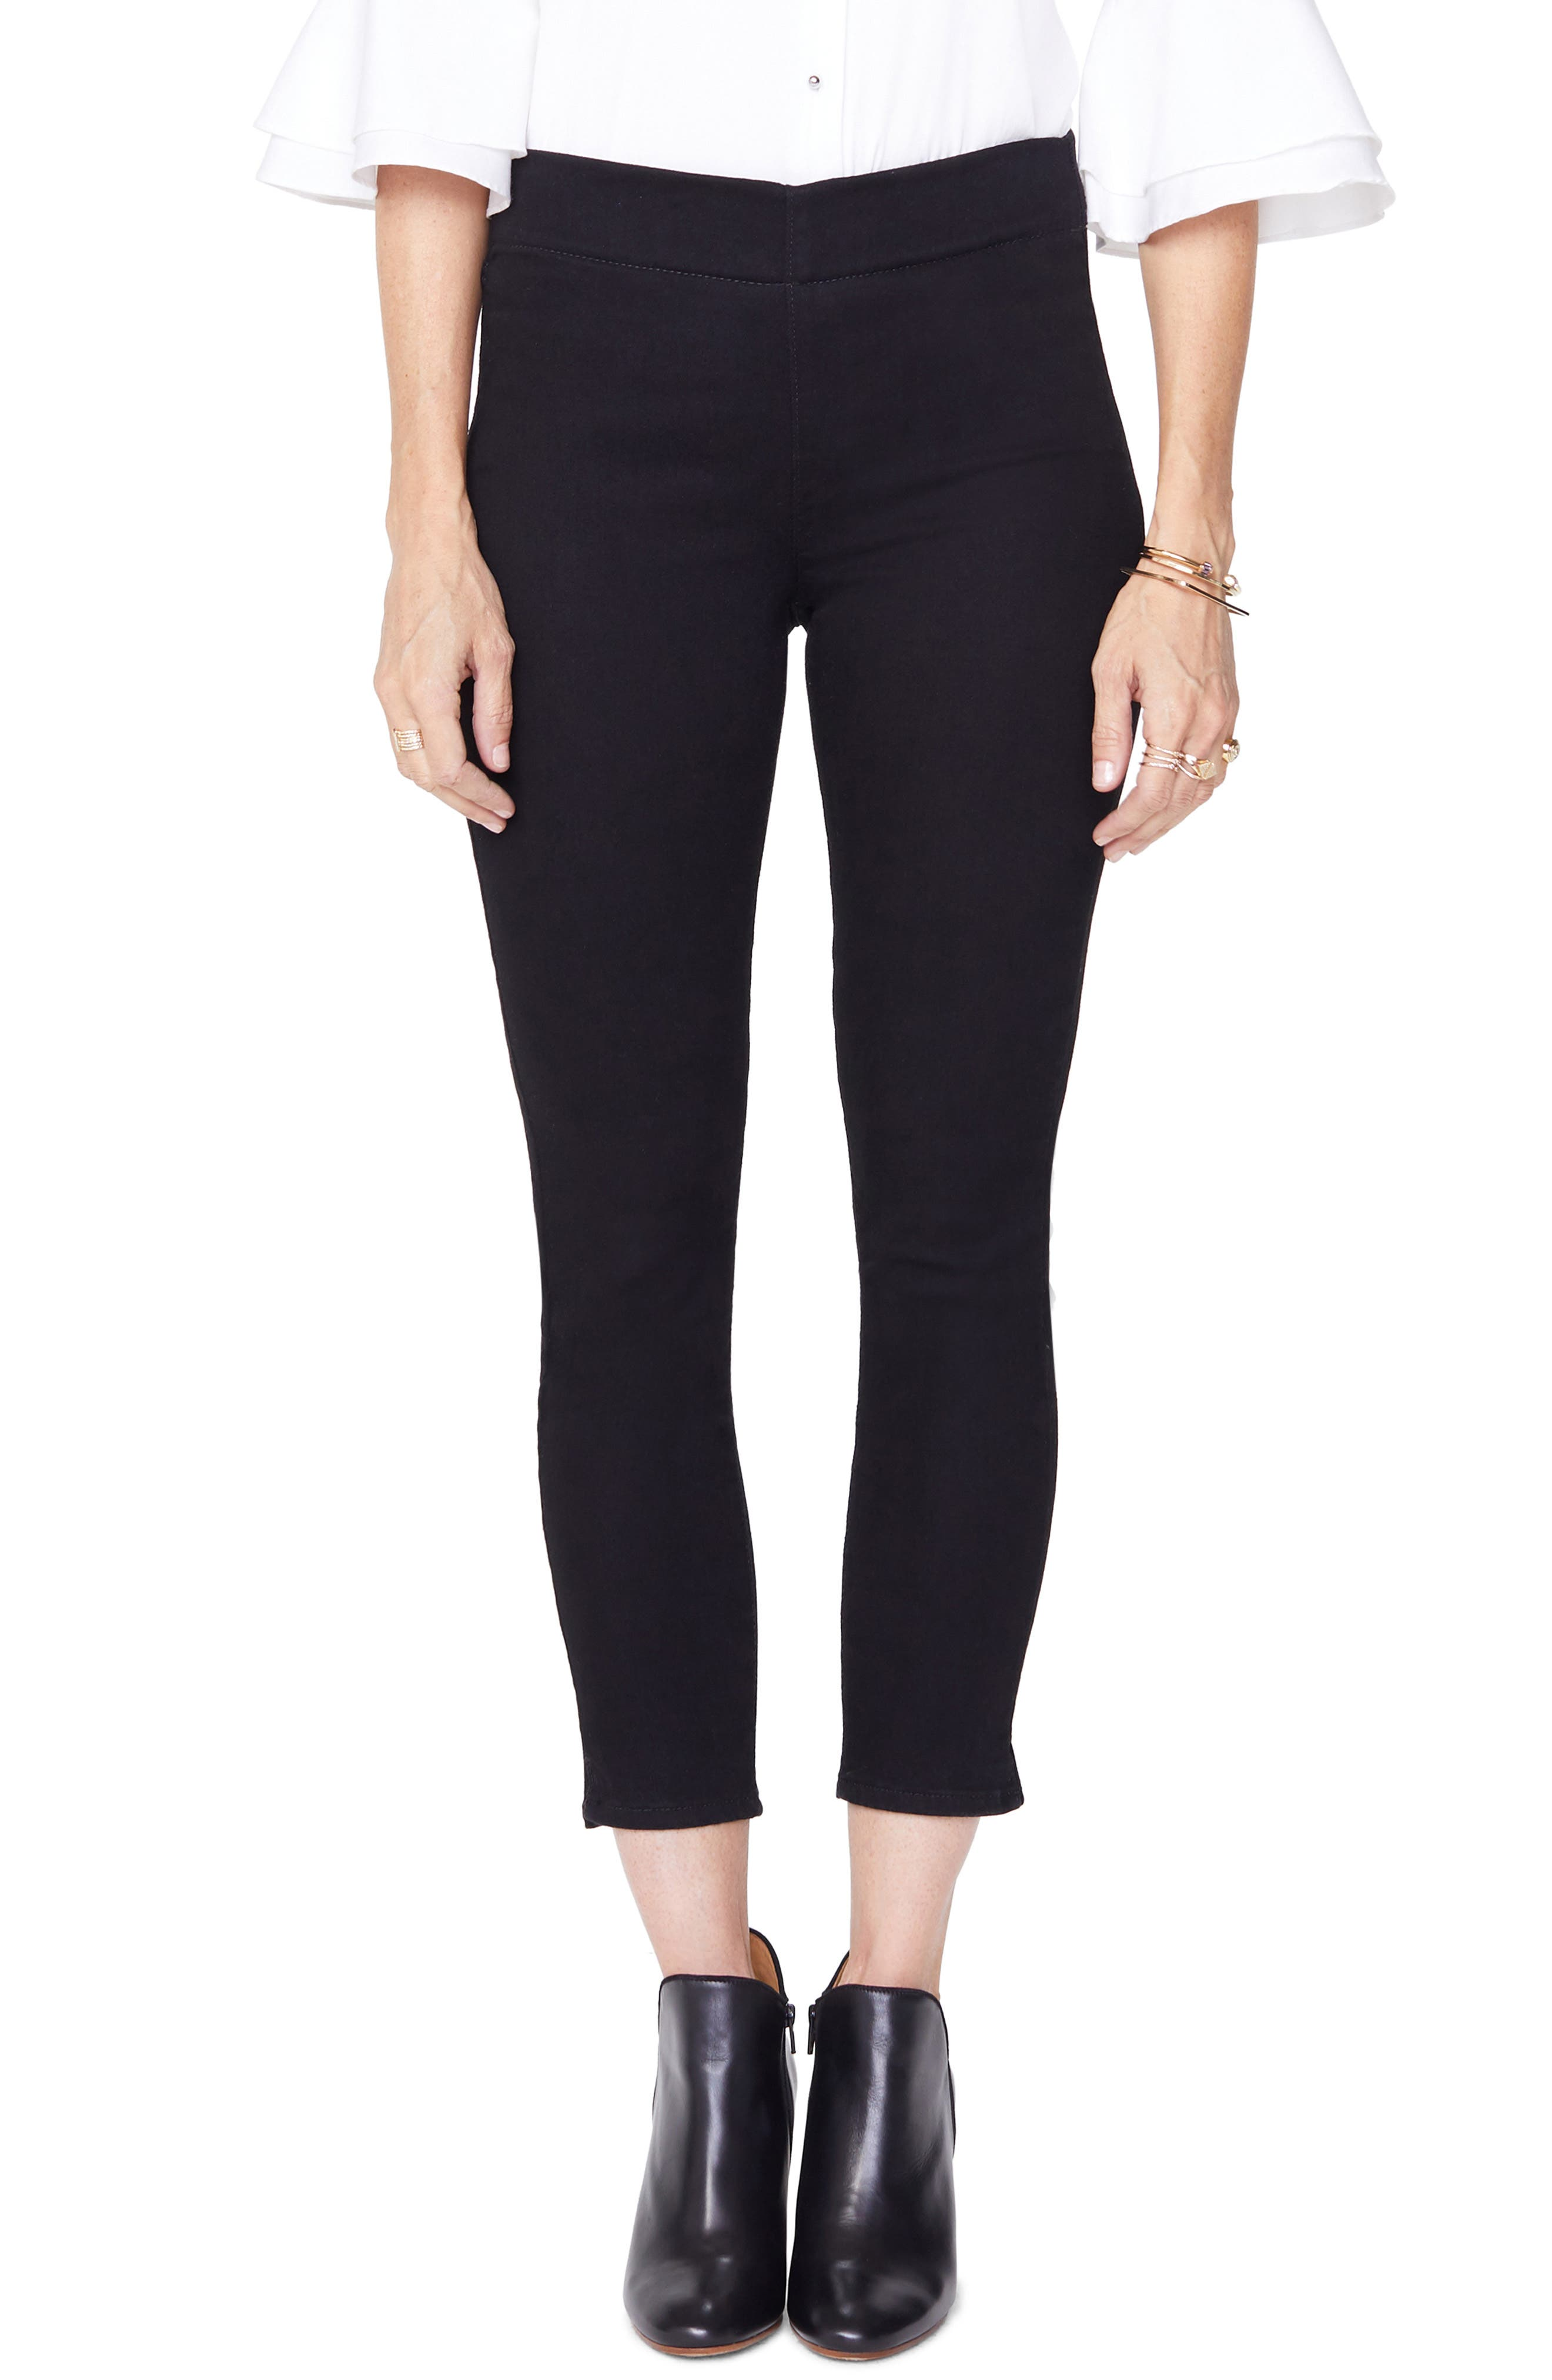 Alina High Waist Pull-On Ankle Skinny Jeans,                             Main thumbnail 1, color,                             BLACK